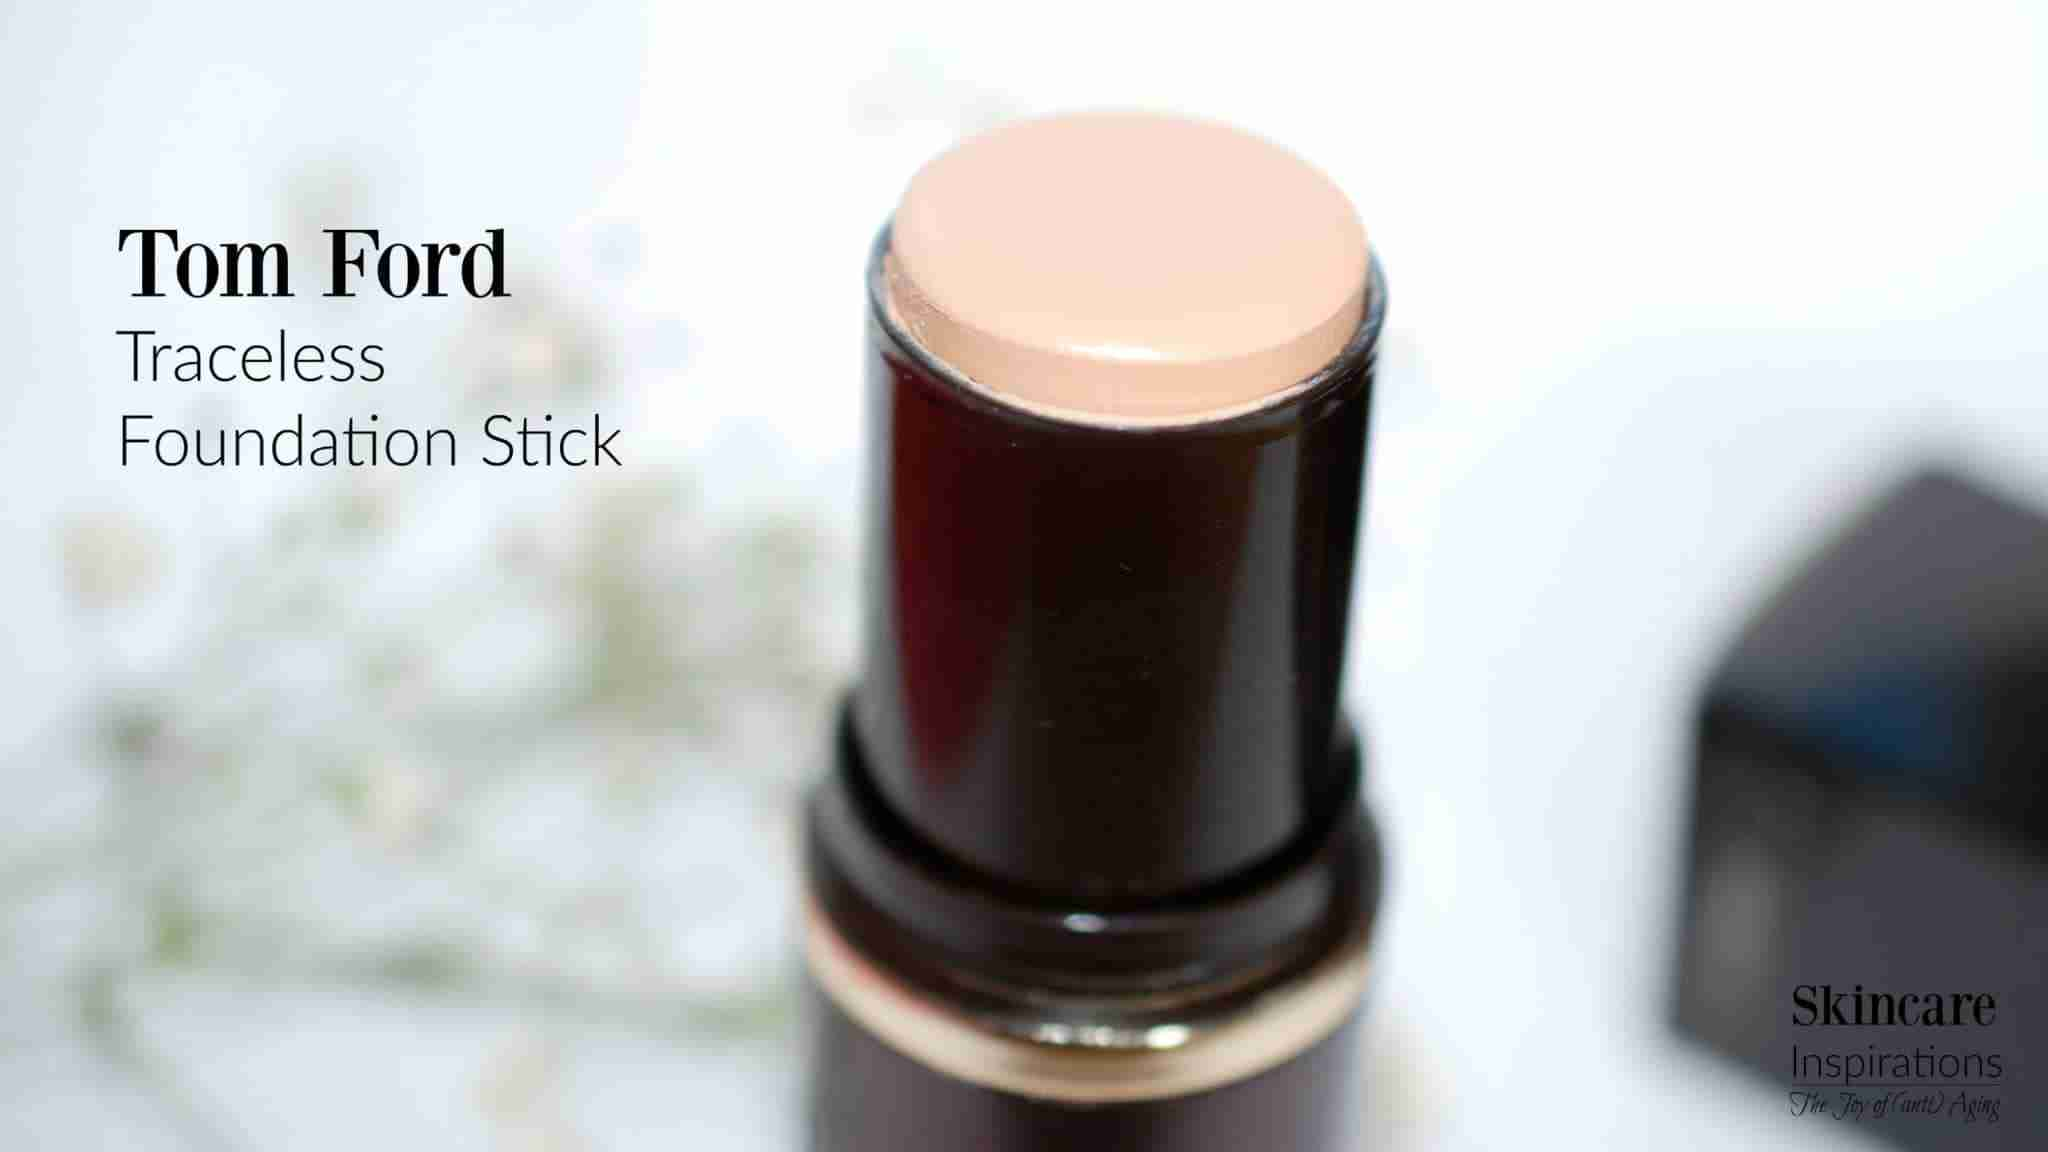 Tom Ford Traceless Foundation Stick 2